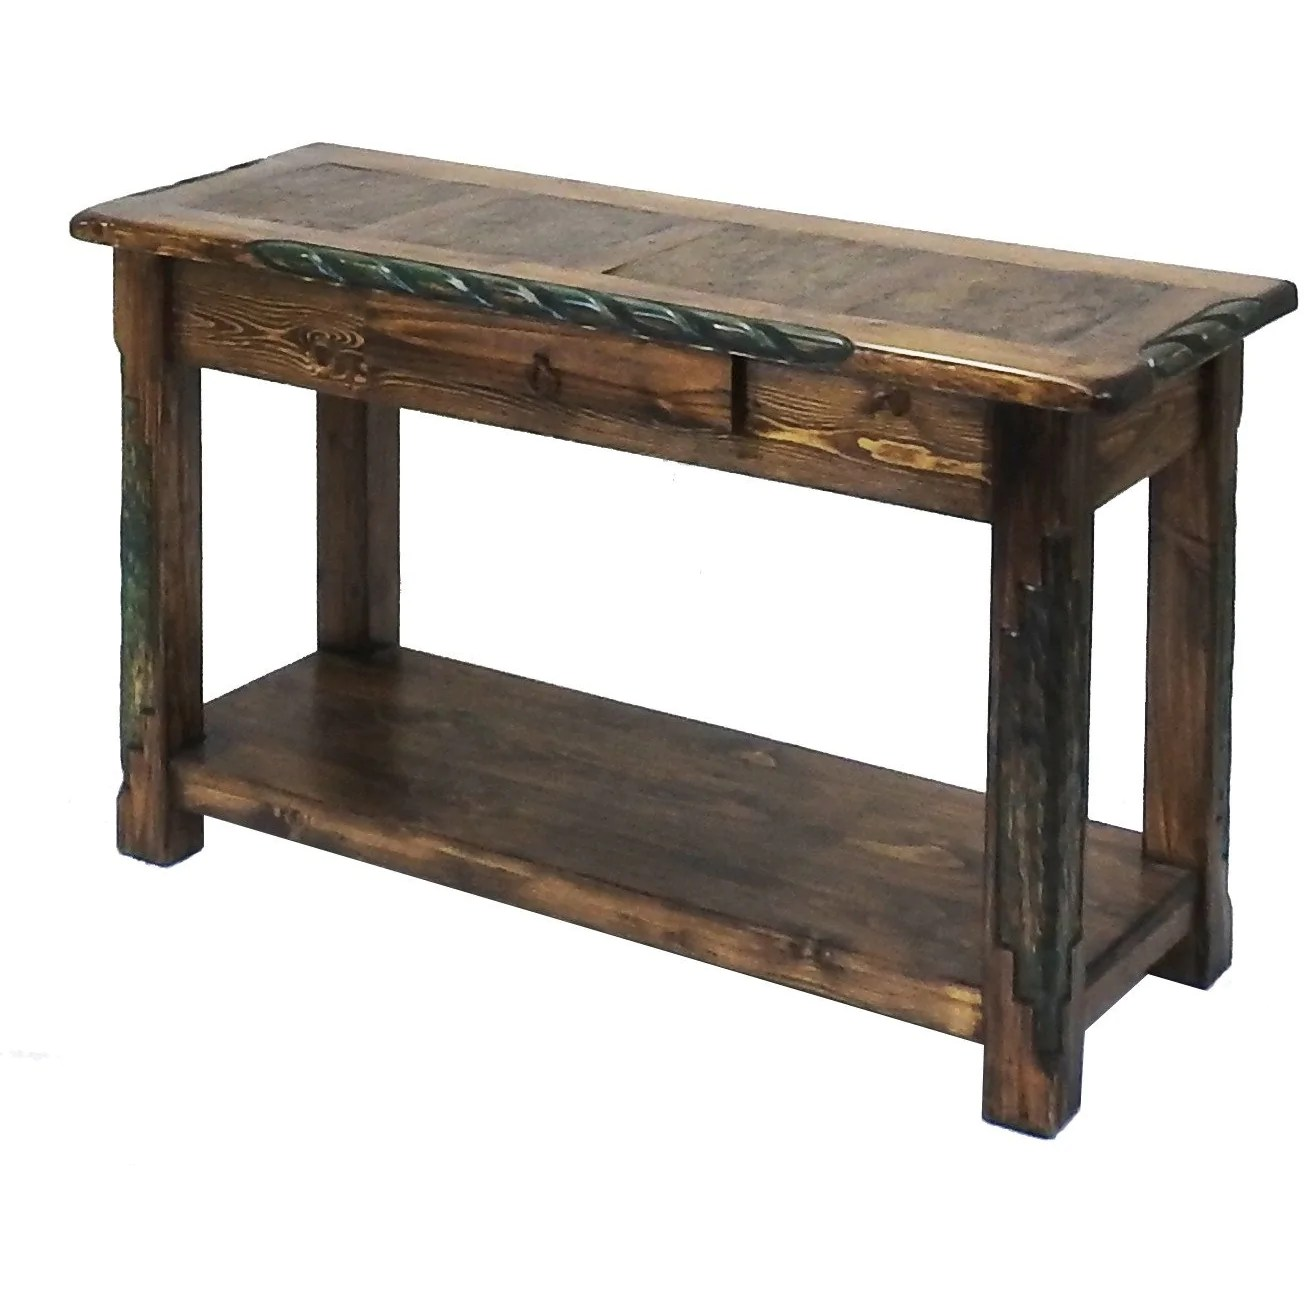 Sofa Table Set Up Southwest Sofa Table Rustics For Less